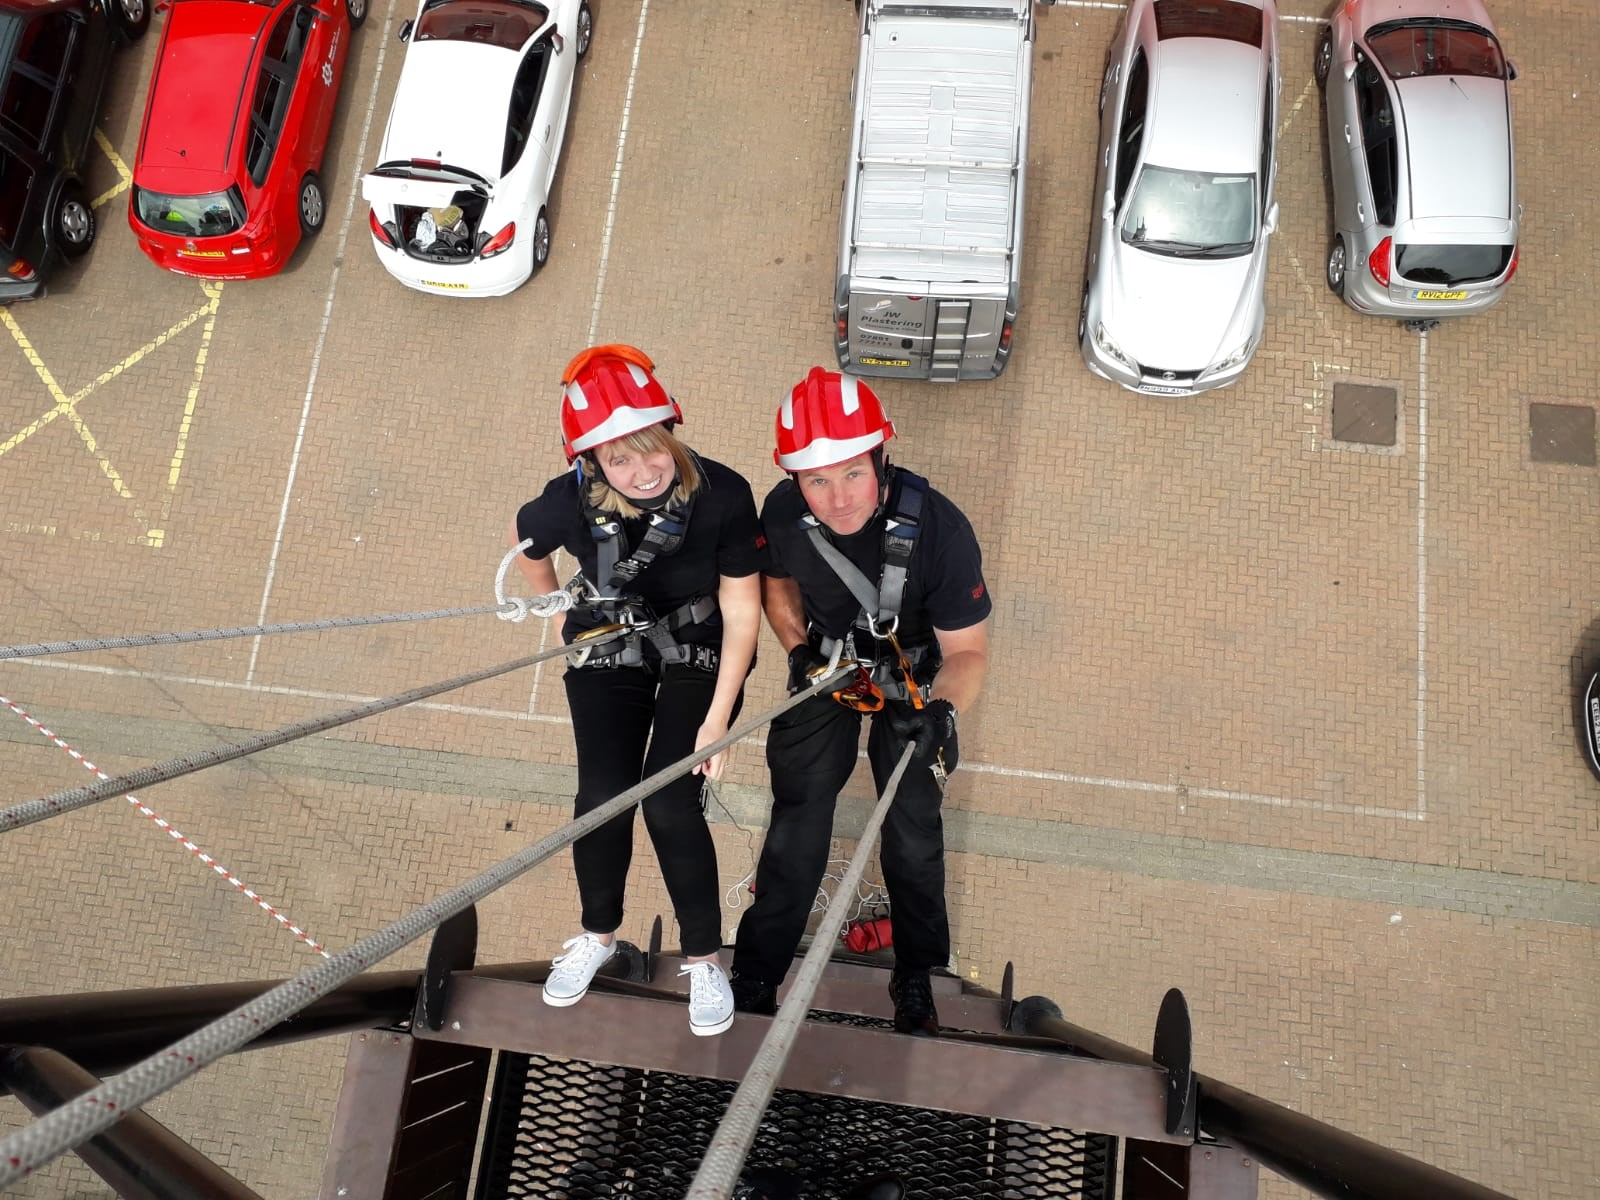 Kent Fire Control goes over the edge in the name of charity